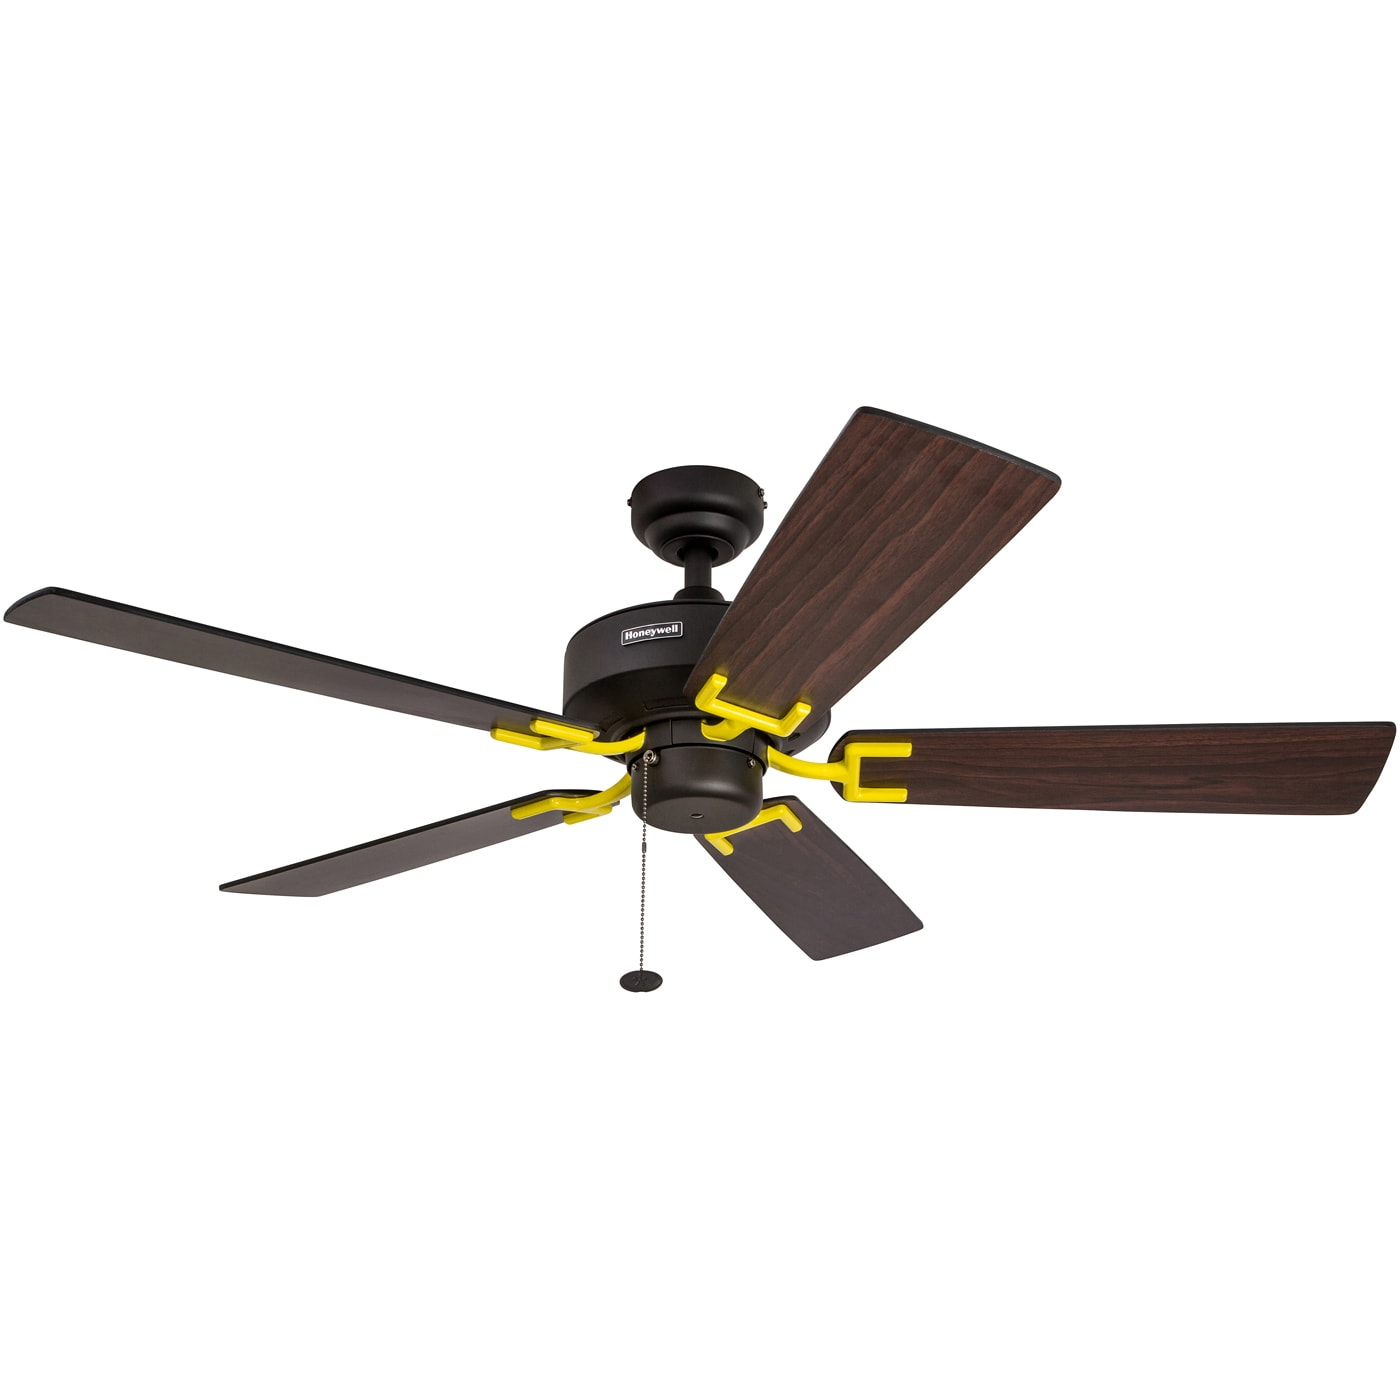 home tools b ceiling improvement fans black ca most for fan amazon wished